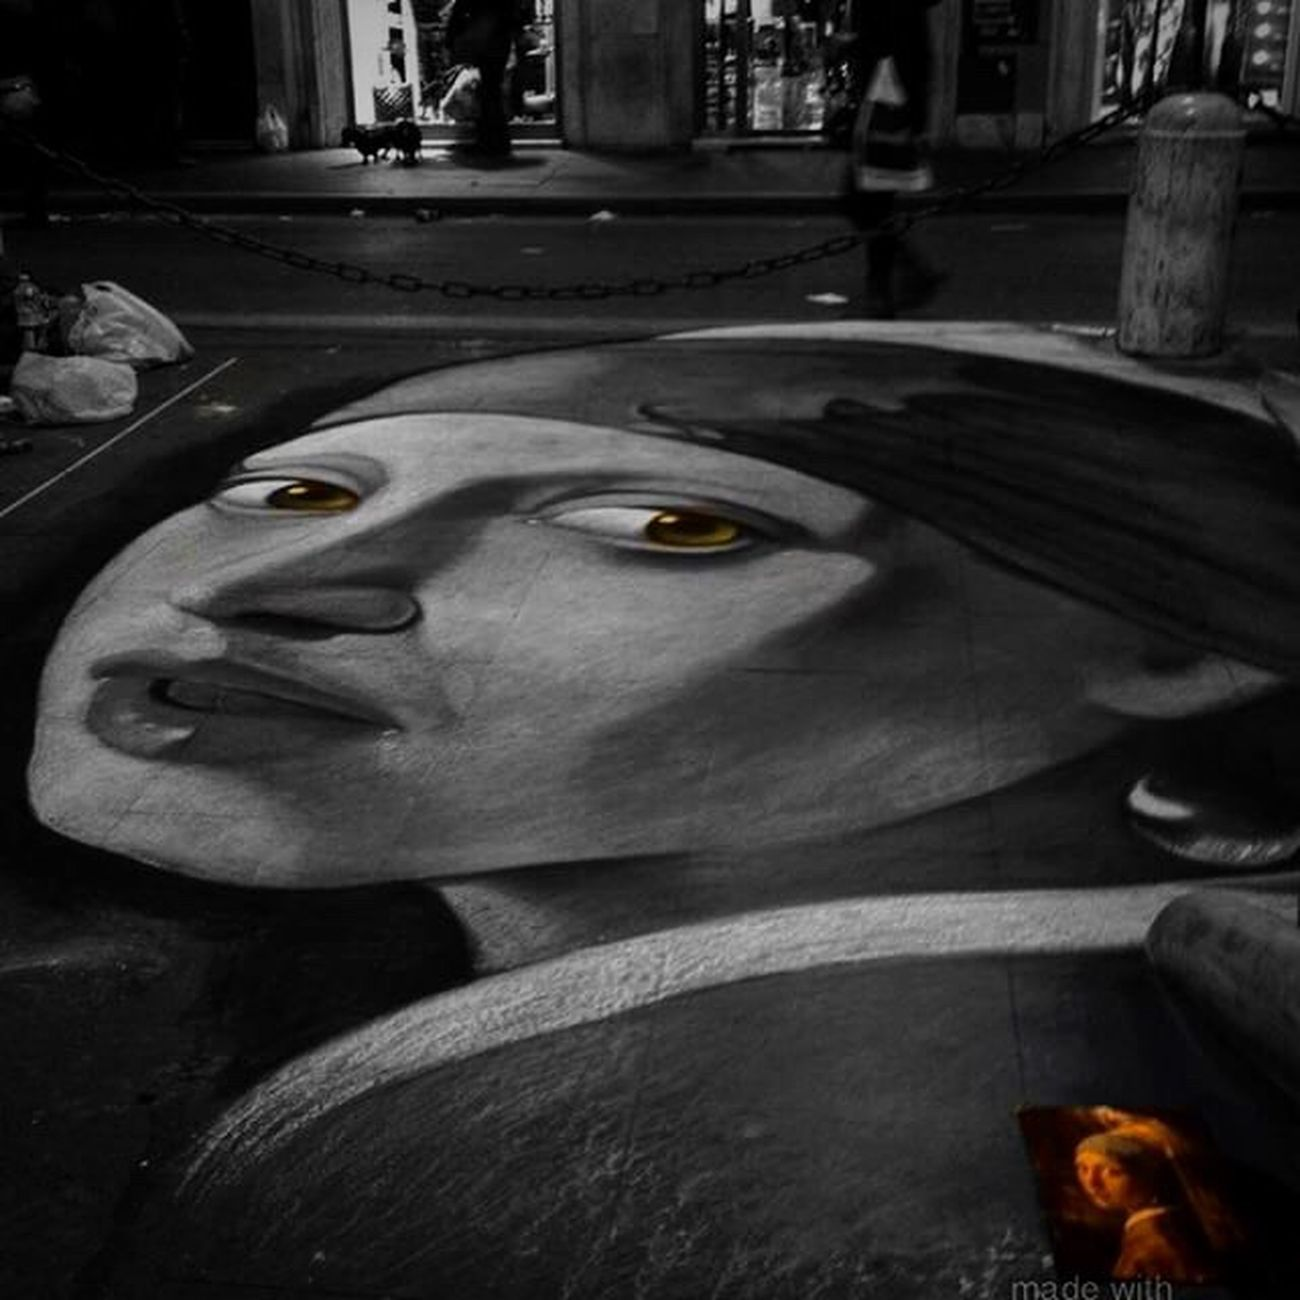 .. Quando la passione per lo scatto incontra l'arte della strada .. Art Streetphotography Street Pic EyeEm Eye4black&white  Eyemphotography EyeEm Gallery First Eyeem Photo Eye4photography  The Week Of Eyeem EyeEm Nature Lover New Talents On EyeEm New Talents Popolari Famous Black And White Travel Photography Shot EyeEm Best Shots Scenery Shots Blackandwhite Photography Sky New Talent This Week Professionalphotography